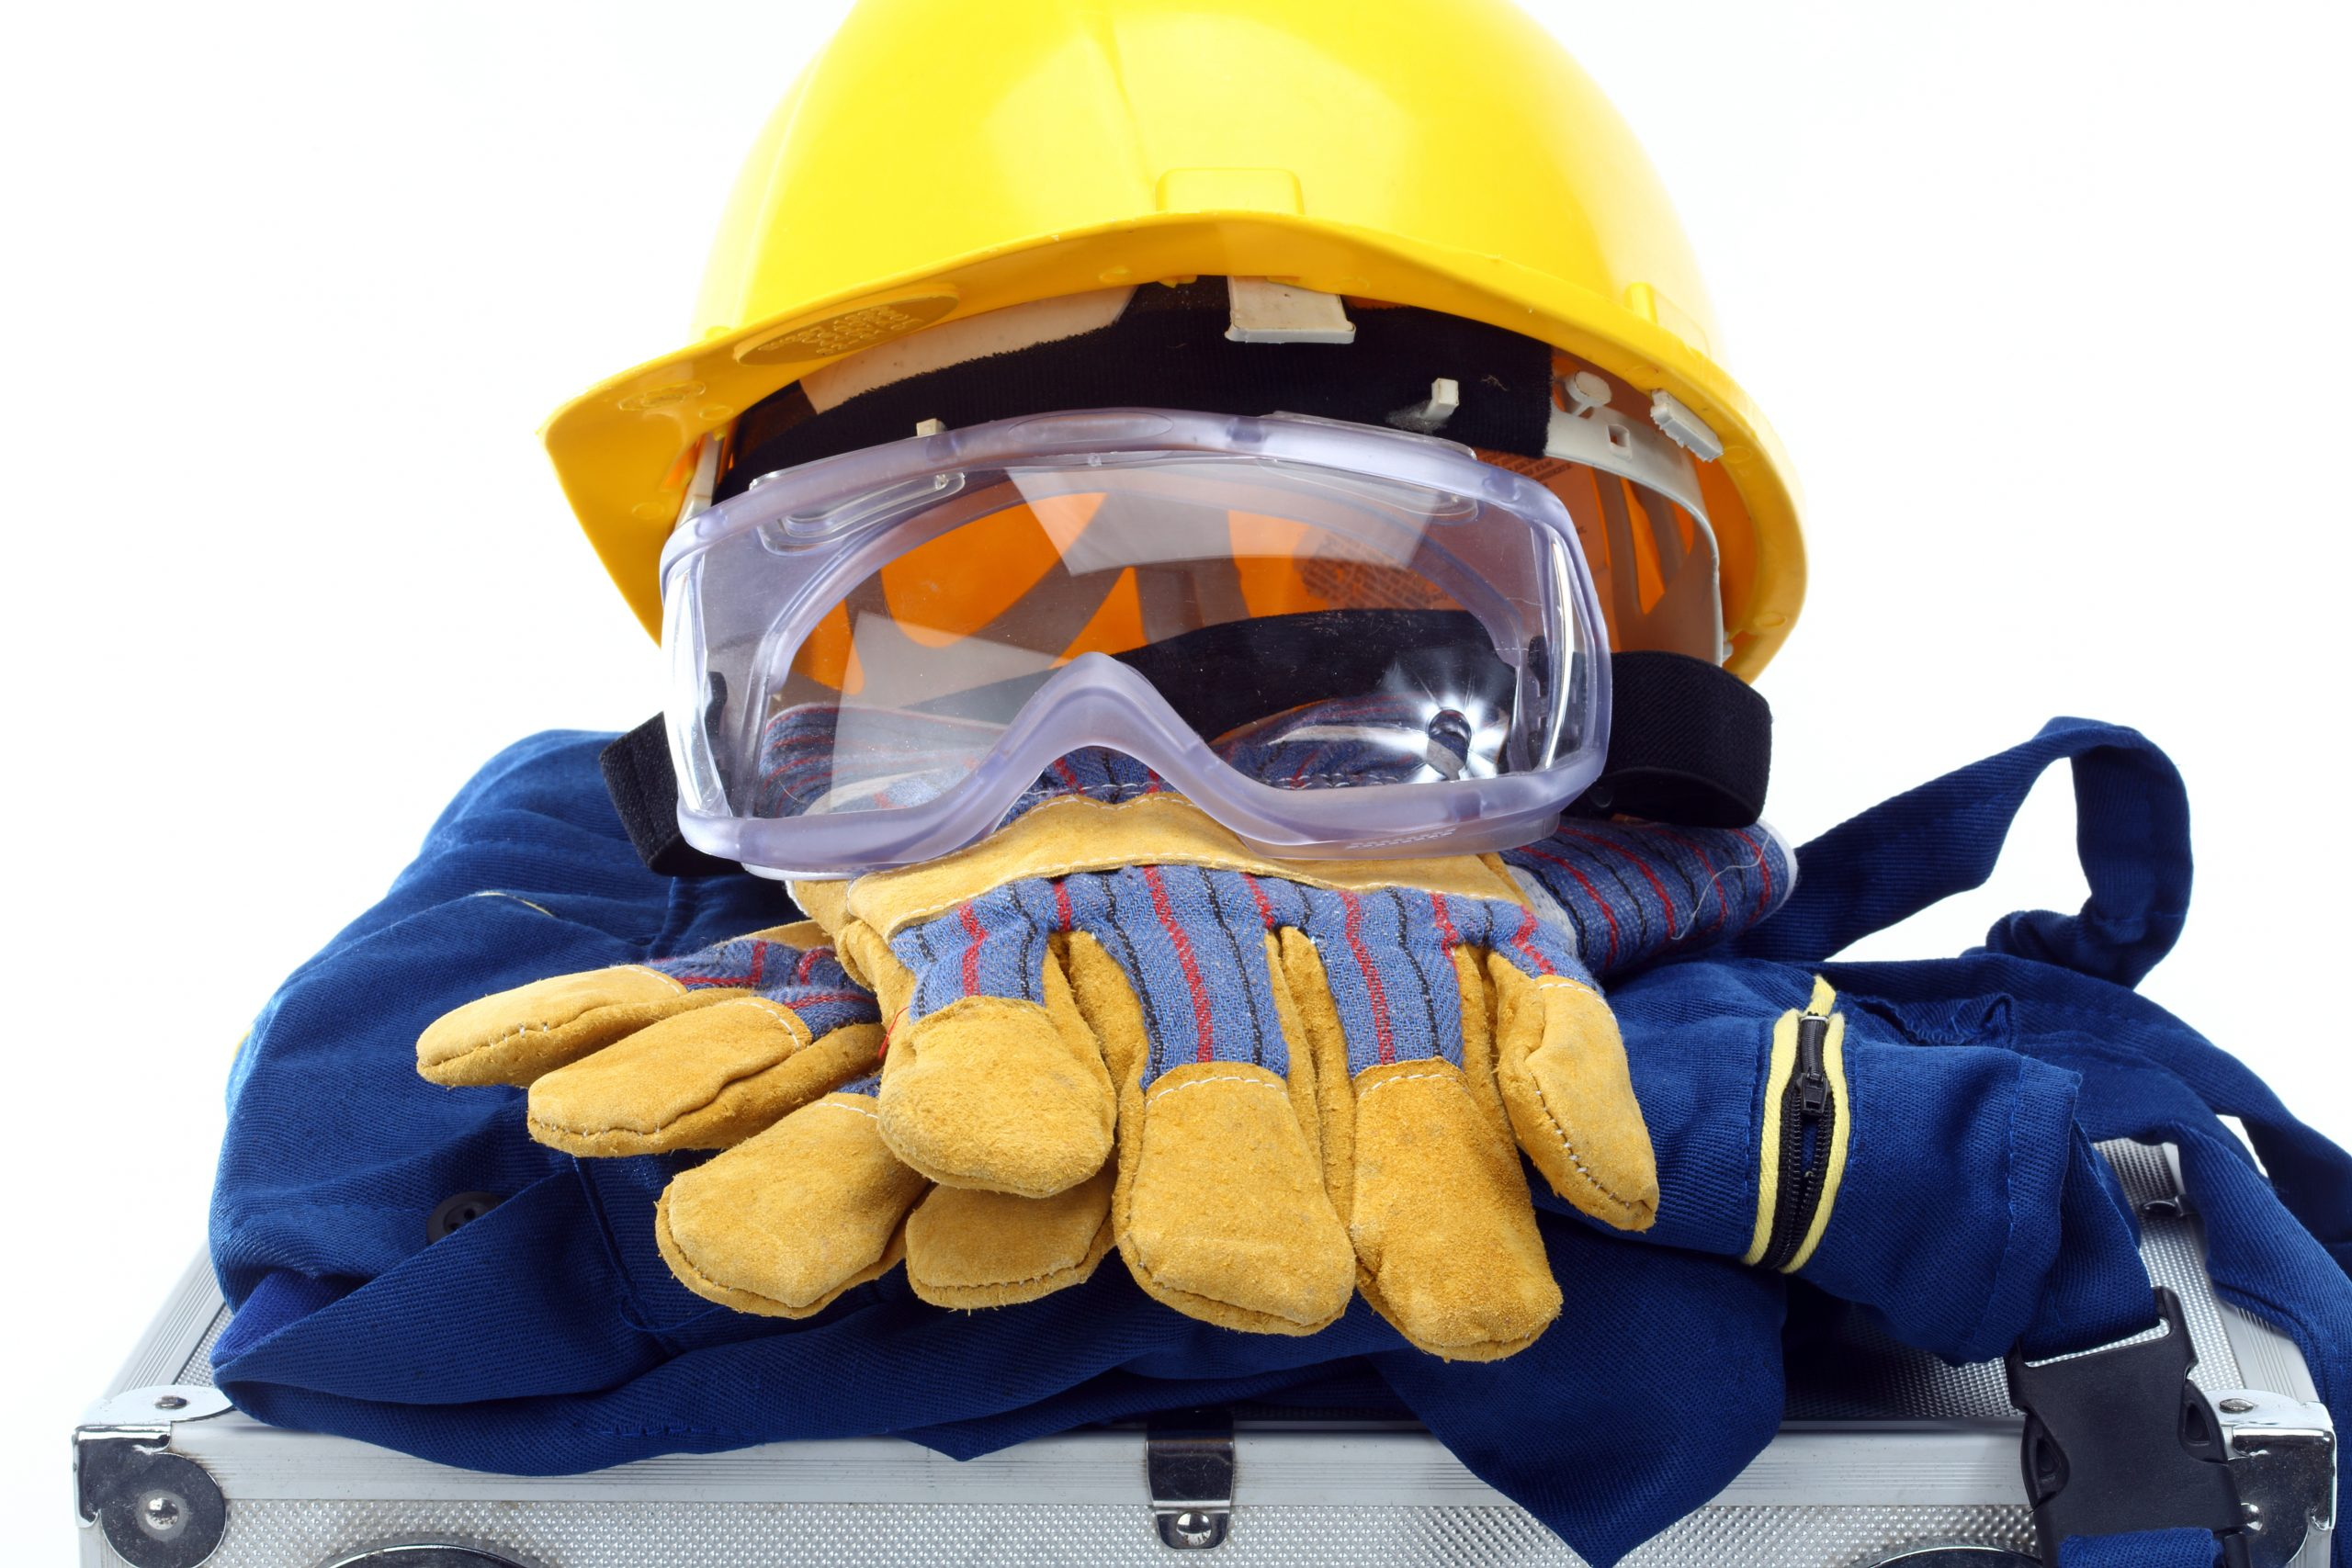 Health & Safety at work Training Courses